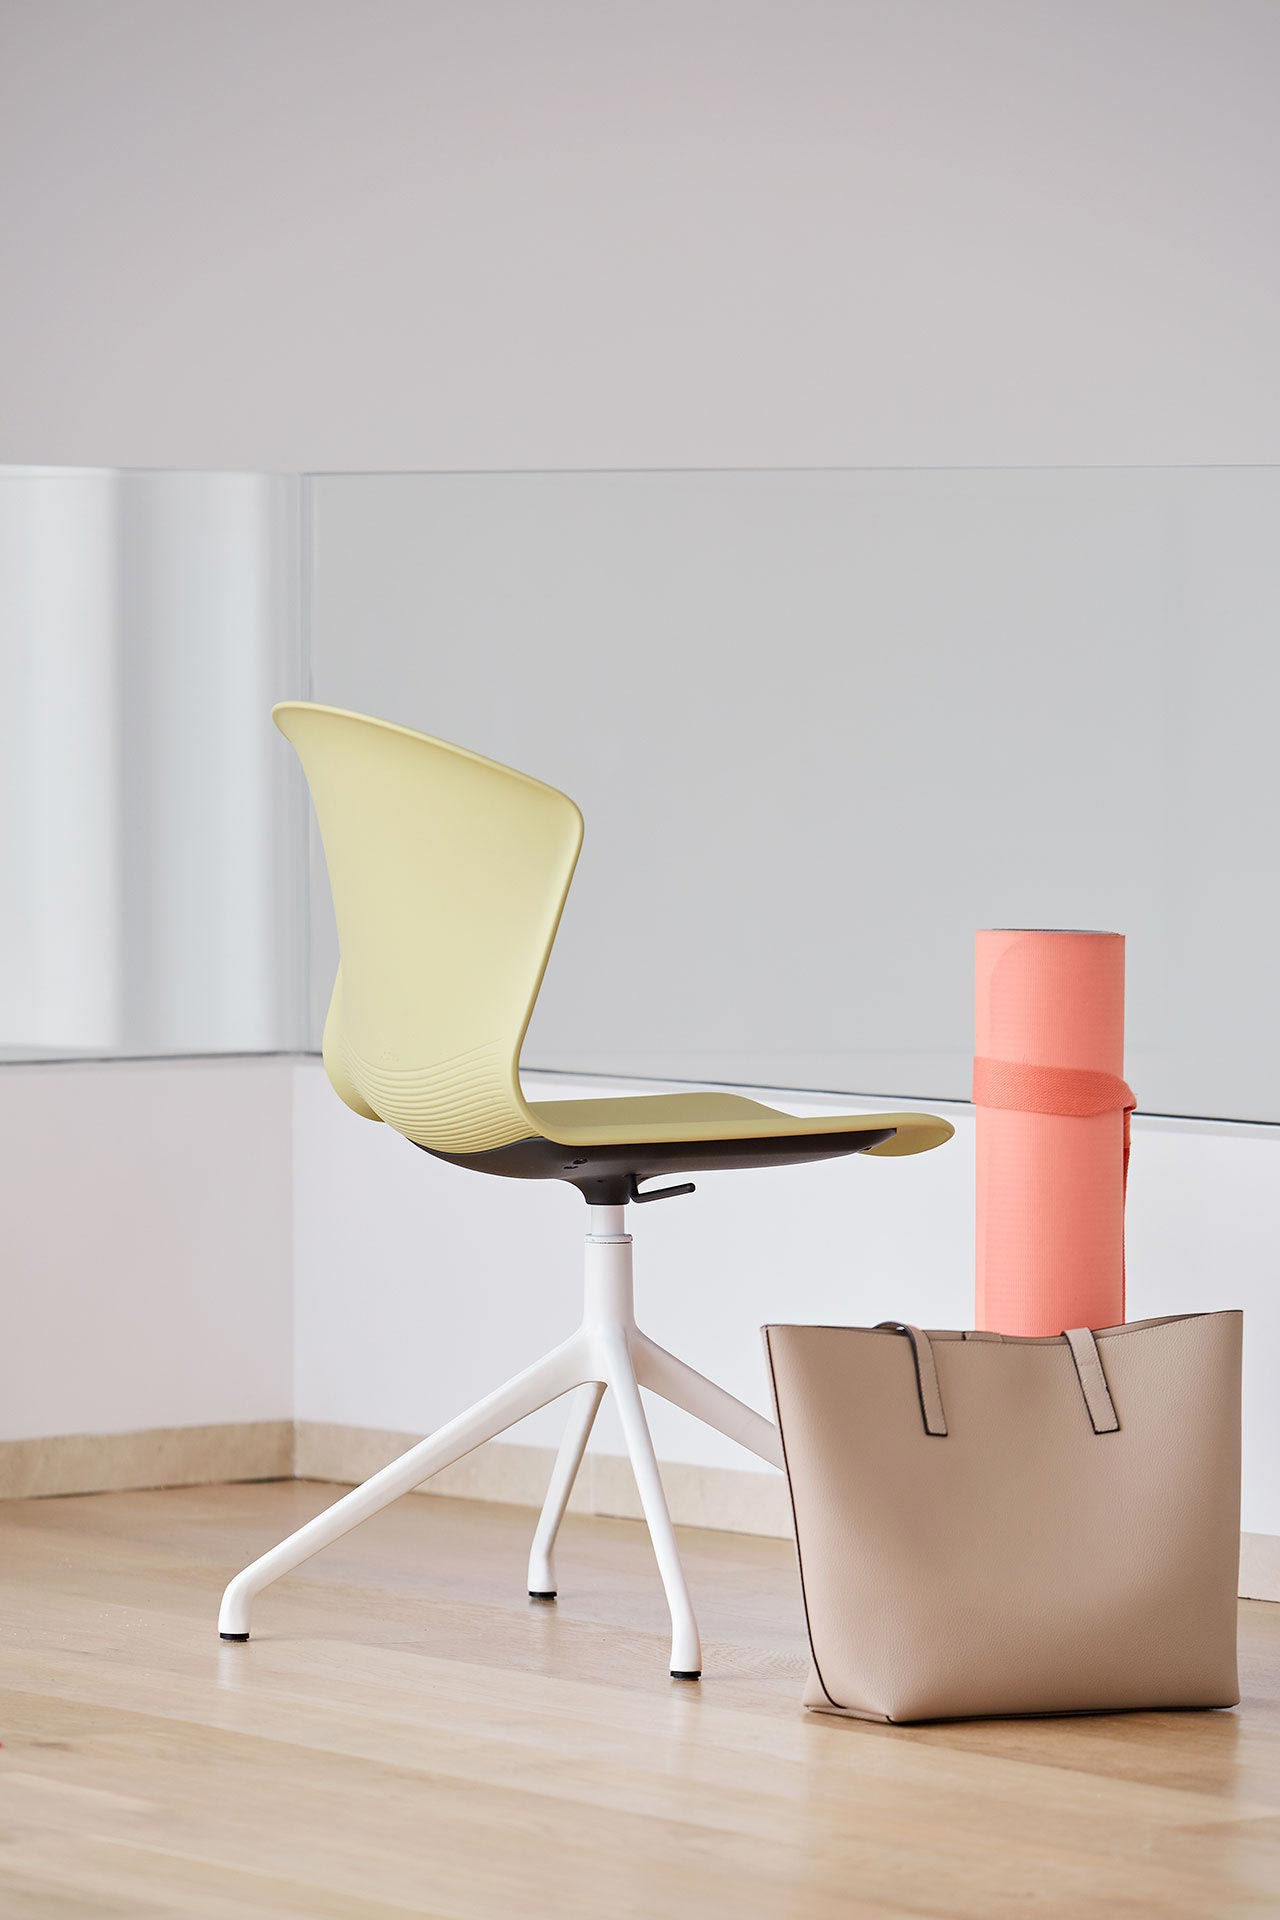 chair whass yellow backrest armless strong legs assertive meeting dining spaces appealing design variable functional efficient comfy elegant masof actiu